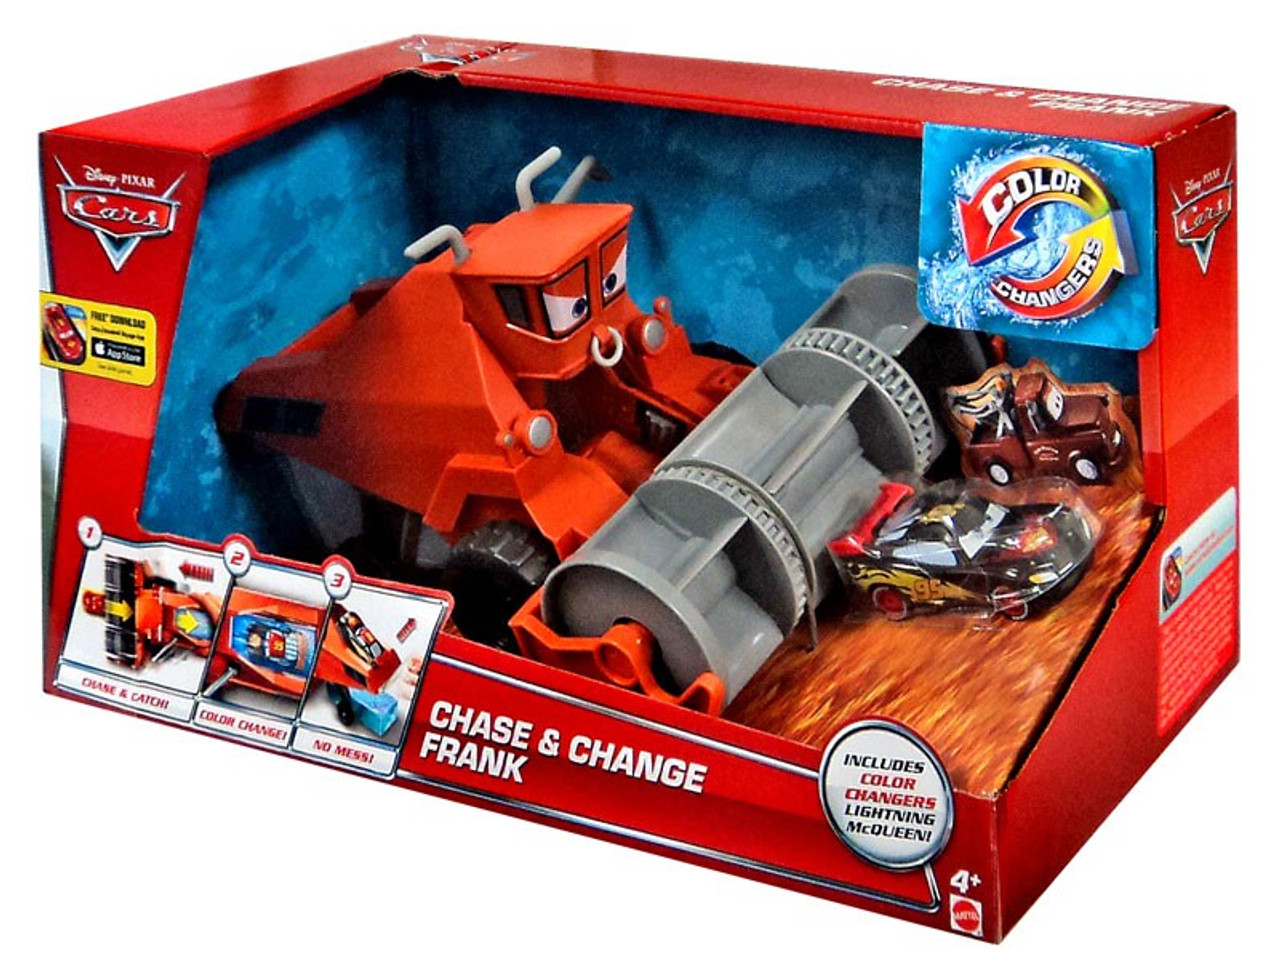 Disney Cars Color Changers Chase /& Change Frank Playset